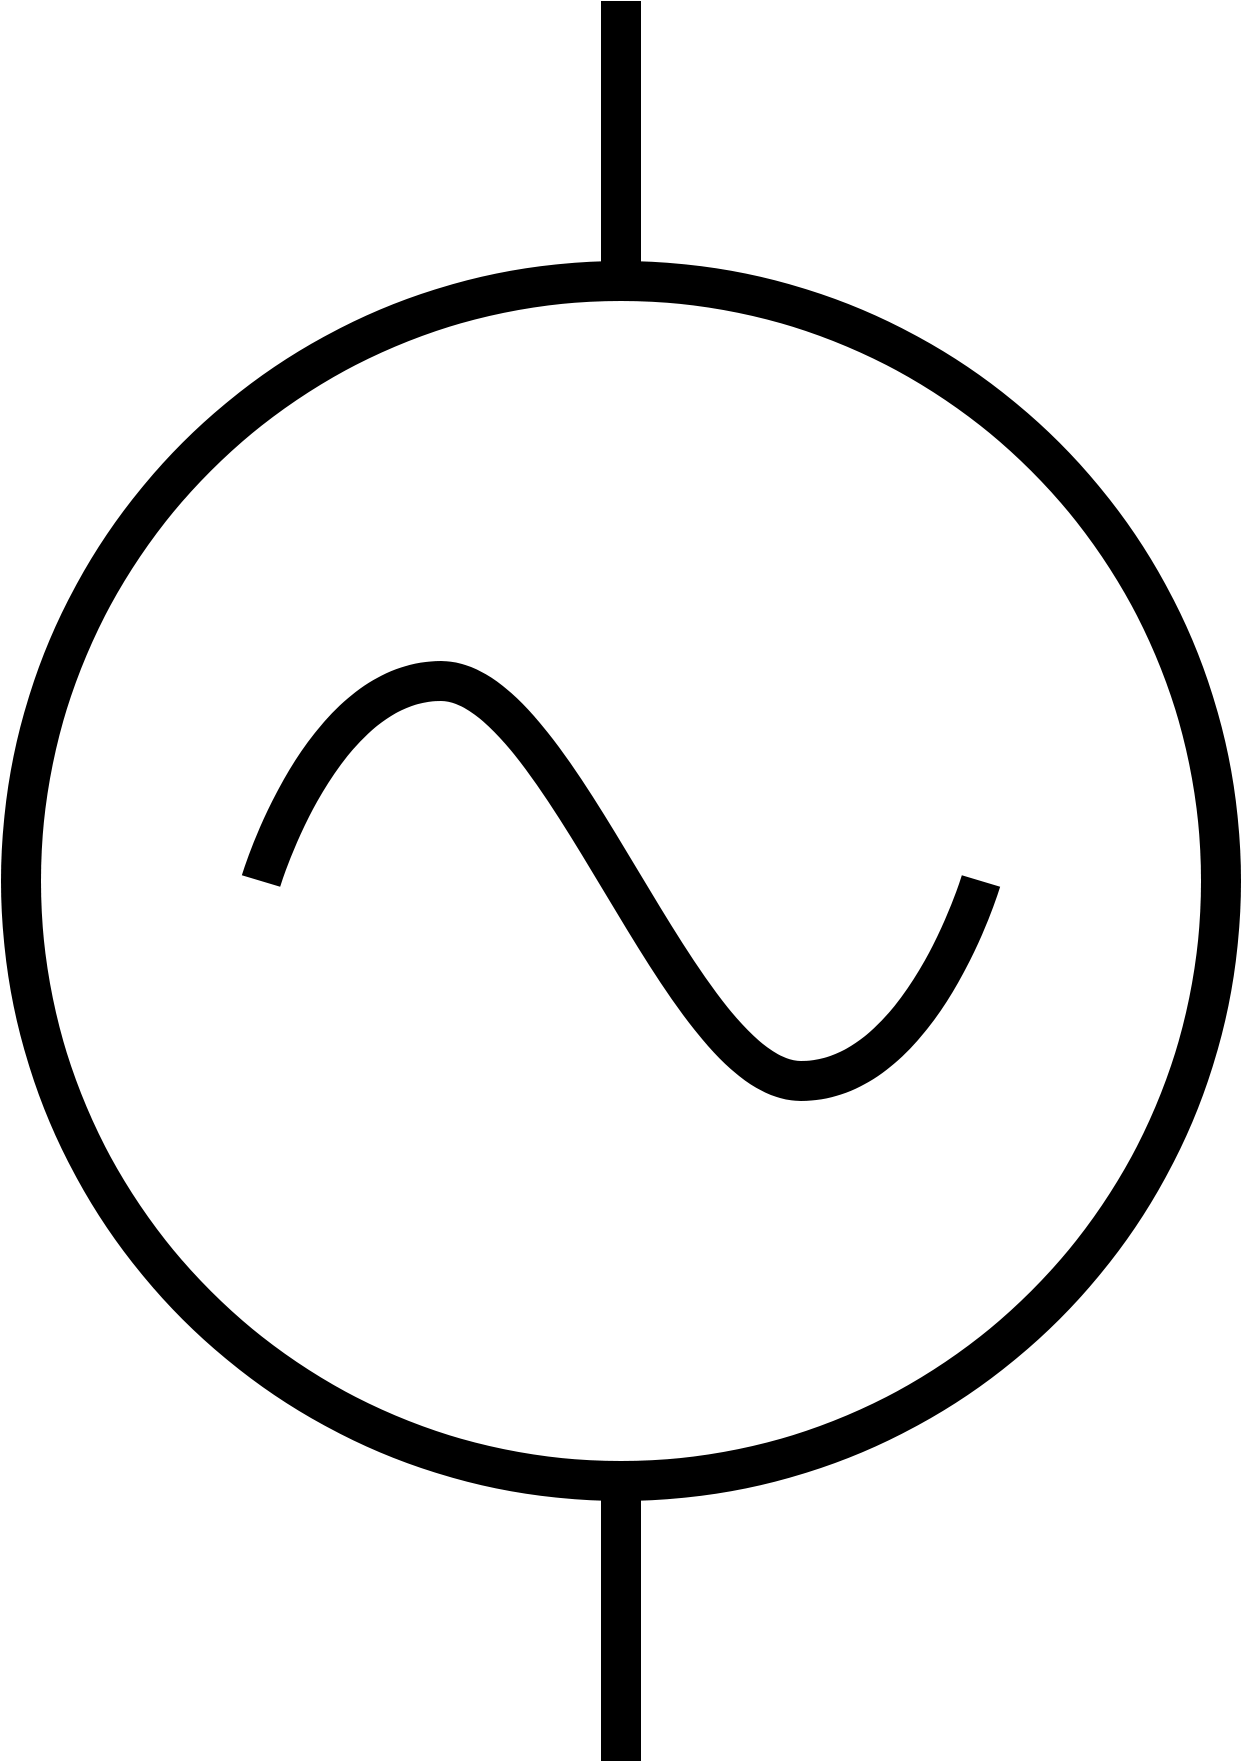 ac supply symbol